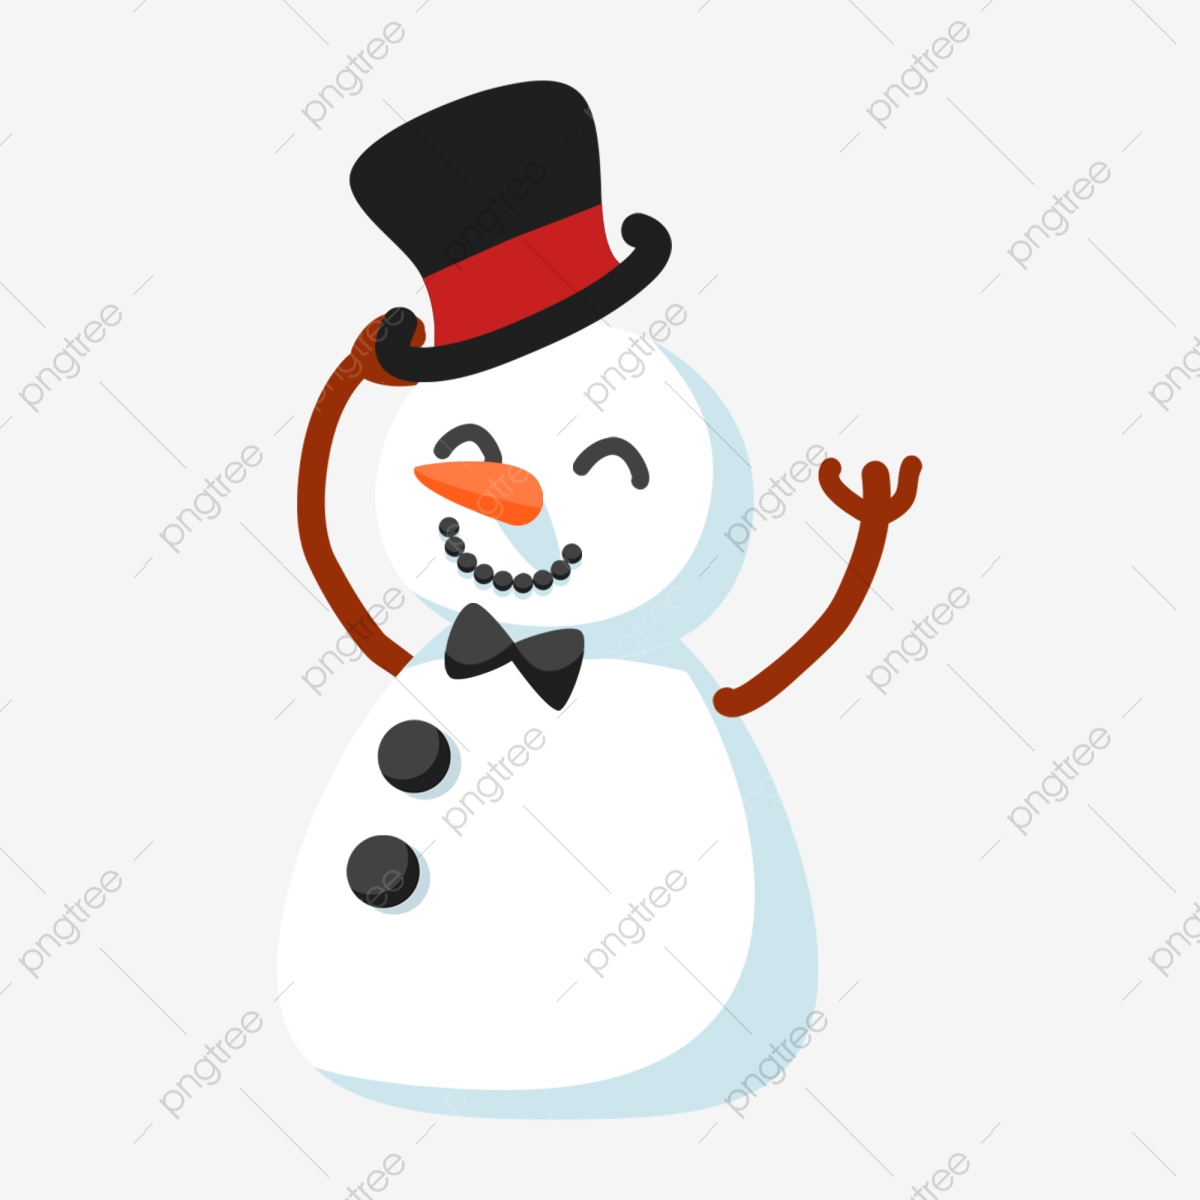 Christmas Snowing Day Christmas Snowman Cute Snowman Snowman Snowy Snowman White Christmas Png Transparent Clipart Image And Psd File For Free Download